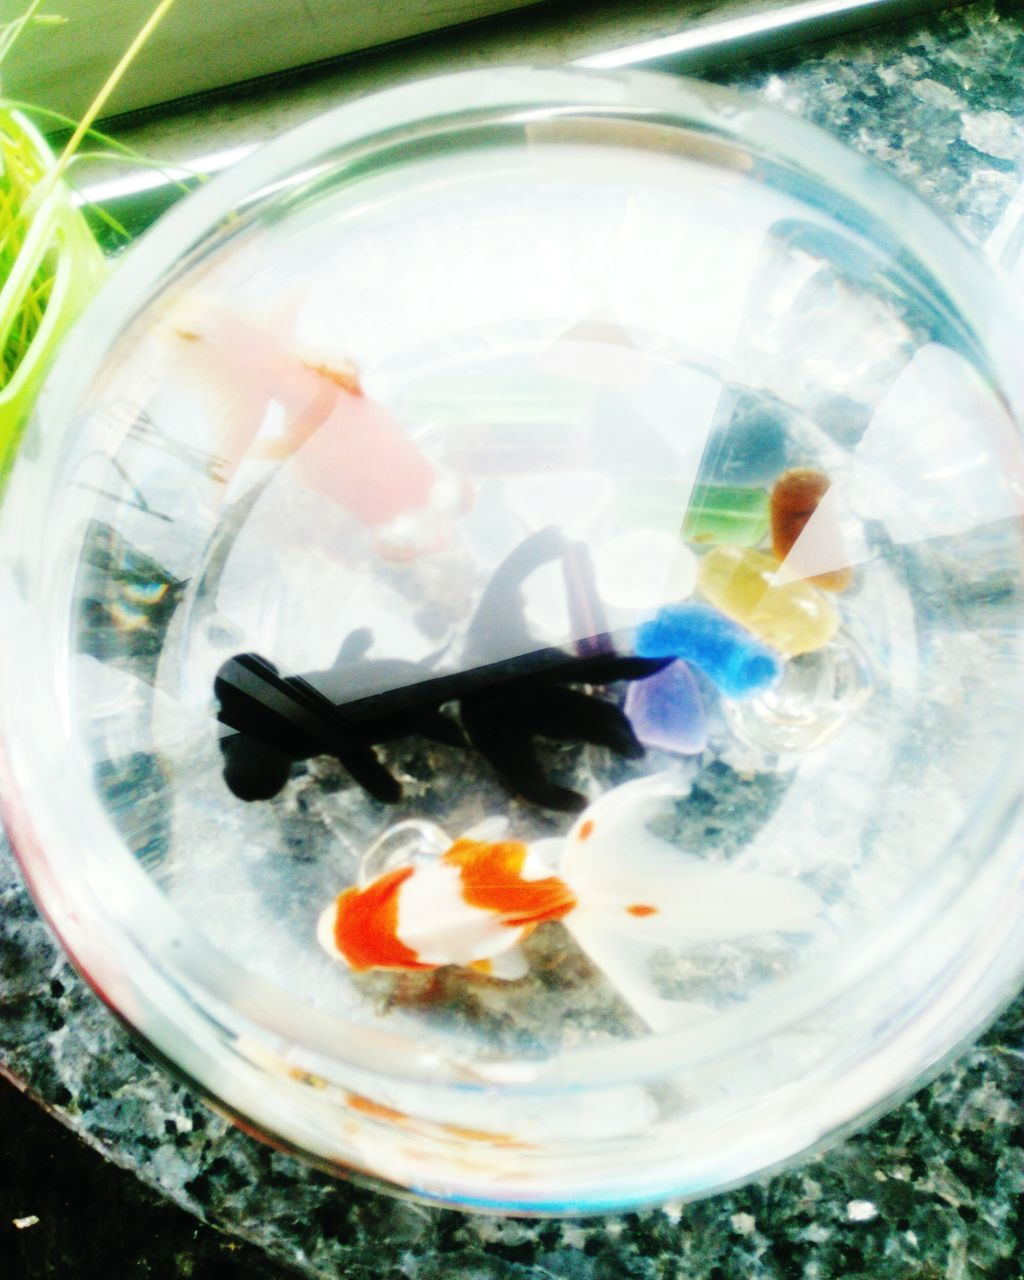 water, goldfish, fishbowl, fish, food and drink, no people, pets, animal themes, swimming, close-up, indoors, day, nature, freshness